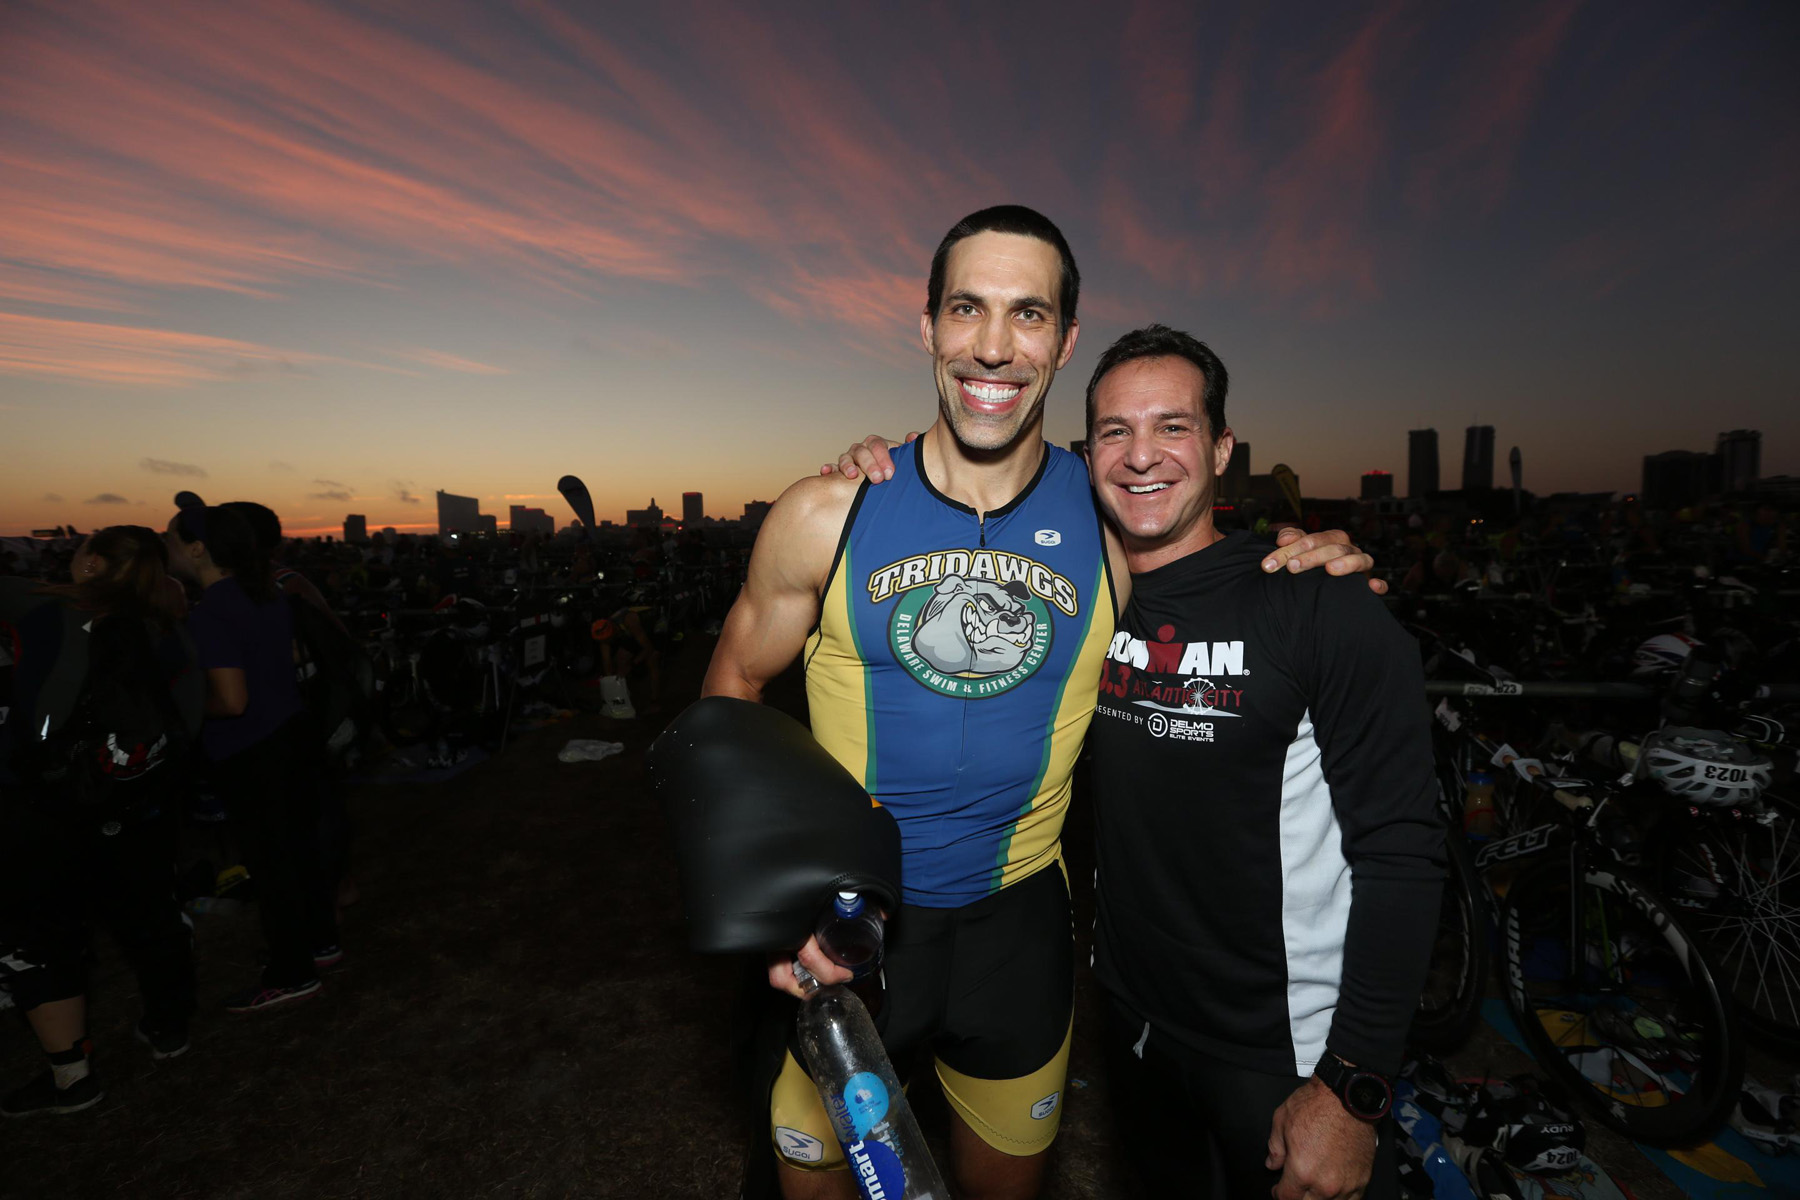 Sunrise glow - Ironman 70.3 Atlantic City